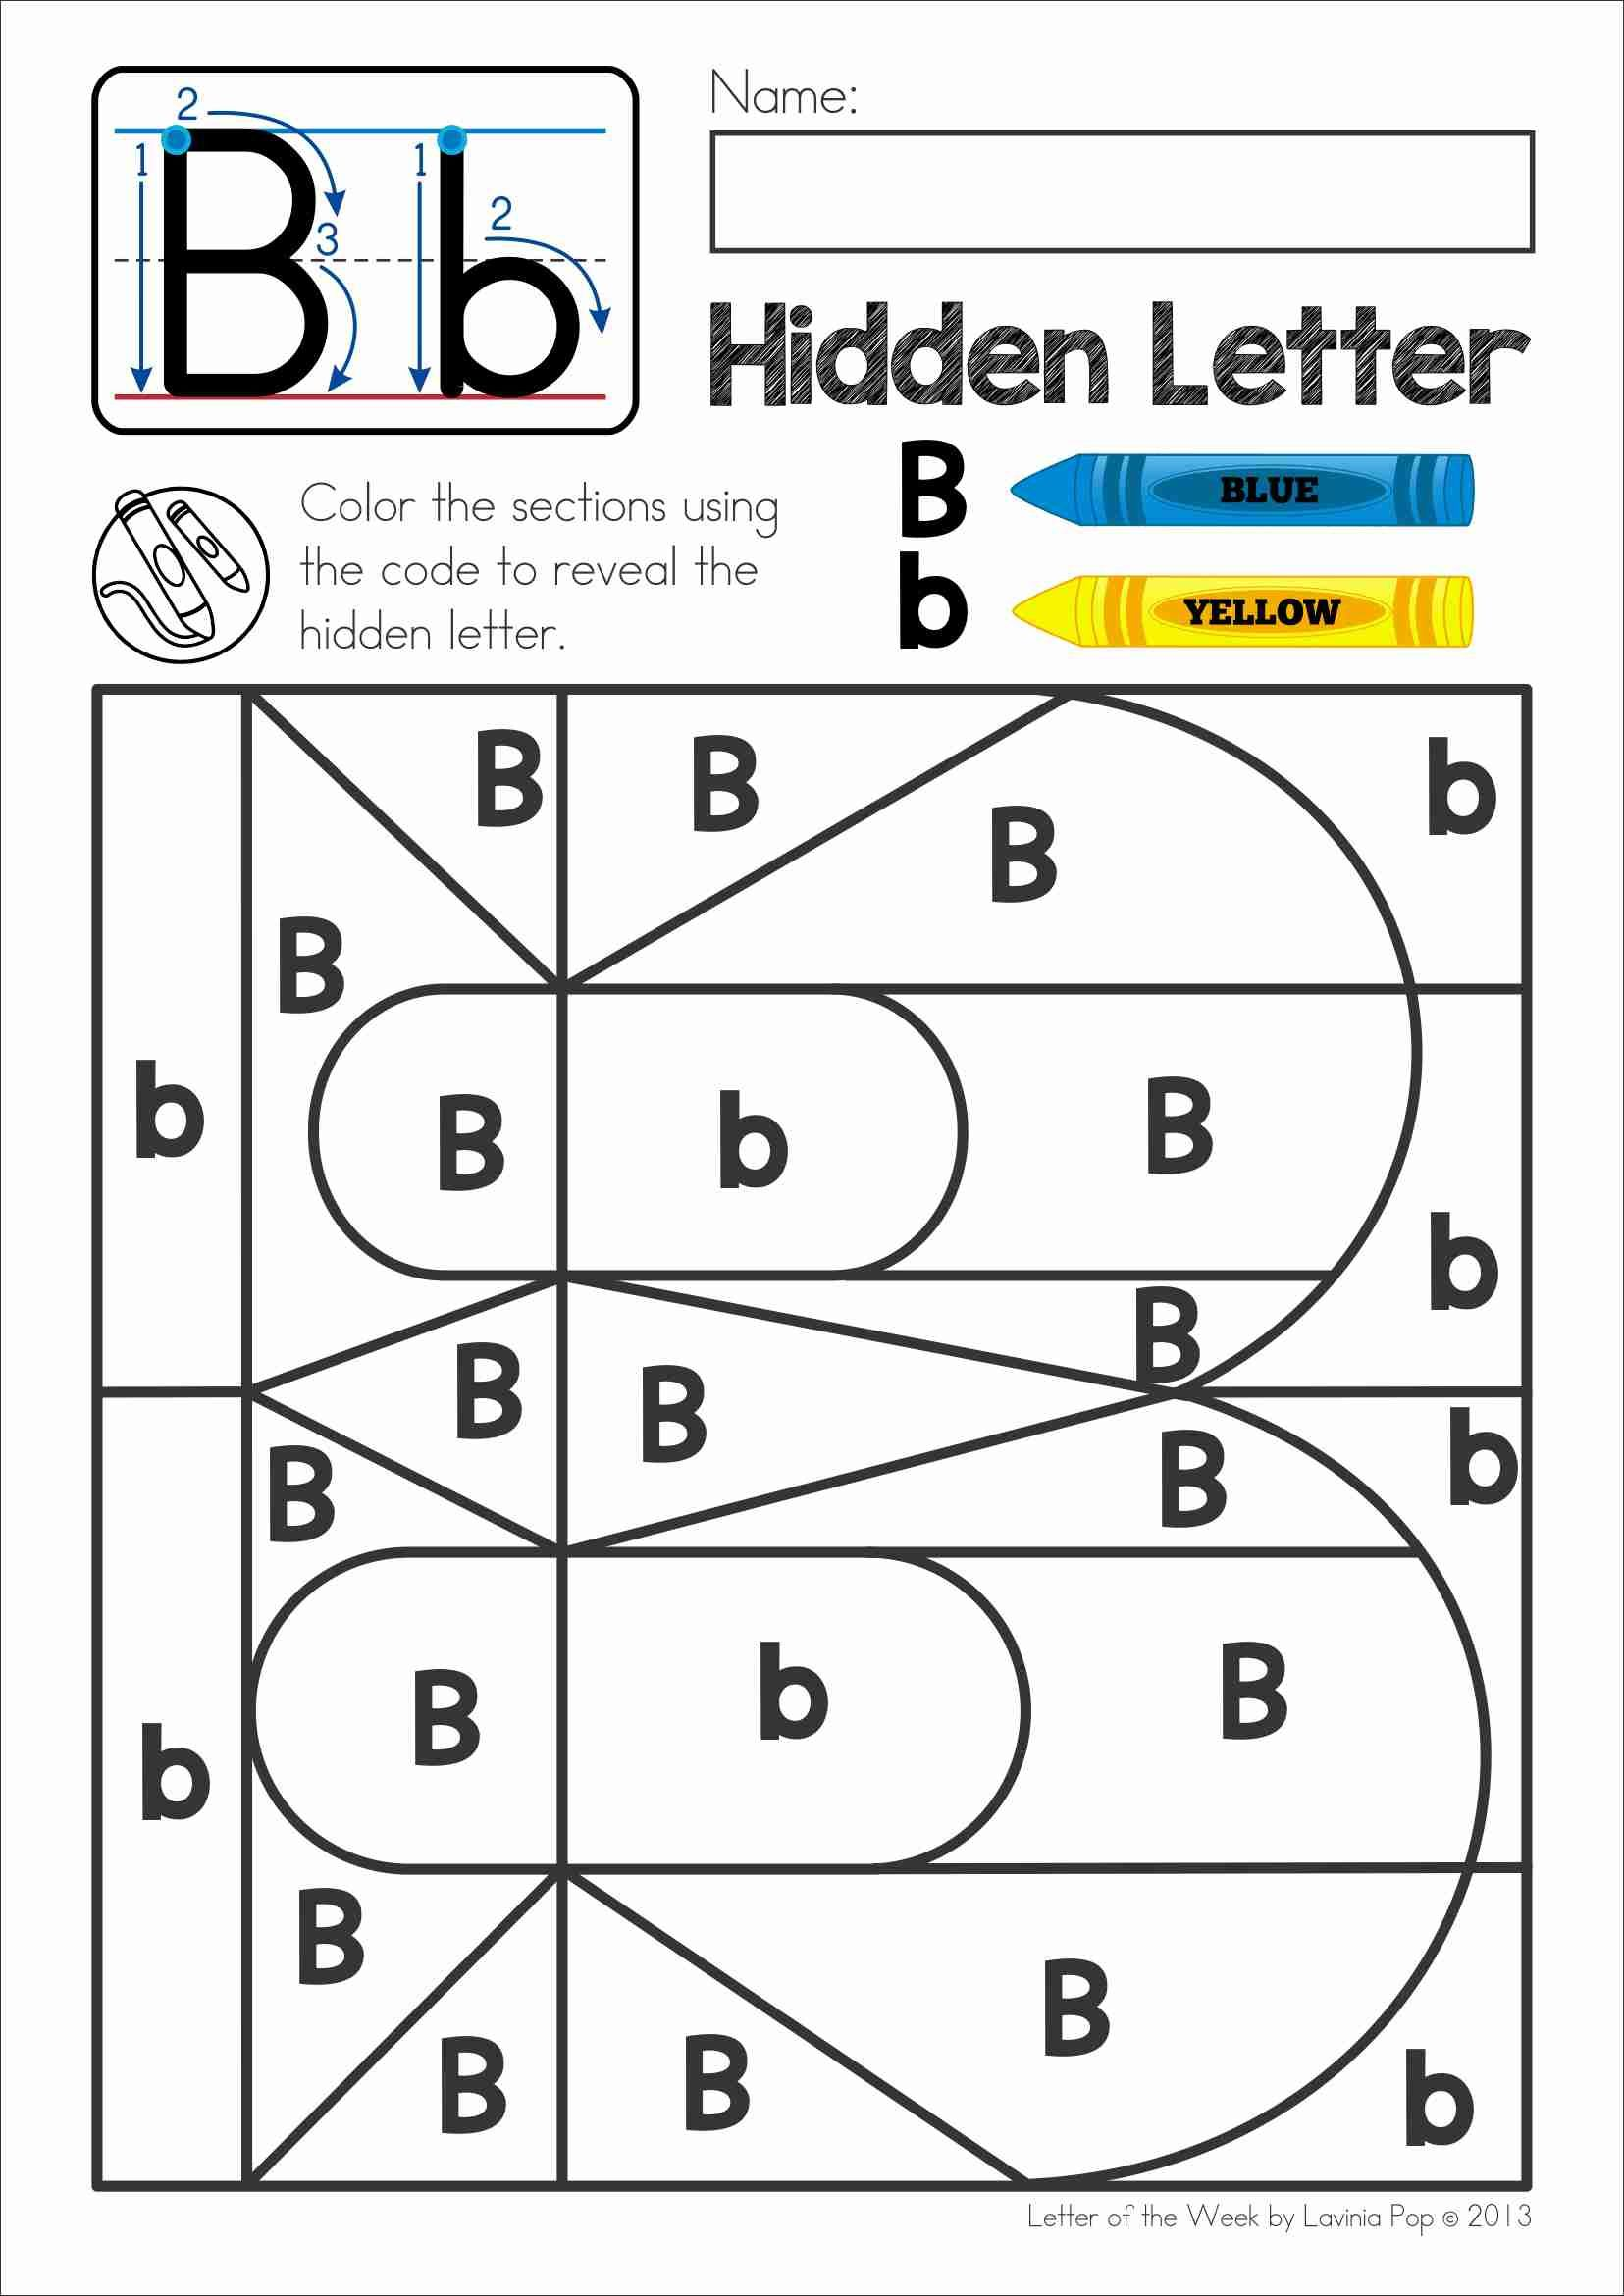 Free Phonics Letter Of The Week B Color By Code To Reveal The Hidden Lett Letter Identification Letter Identification Activities Alphabet Worksheets Preschool